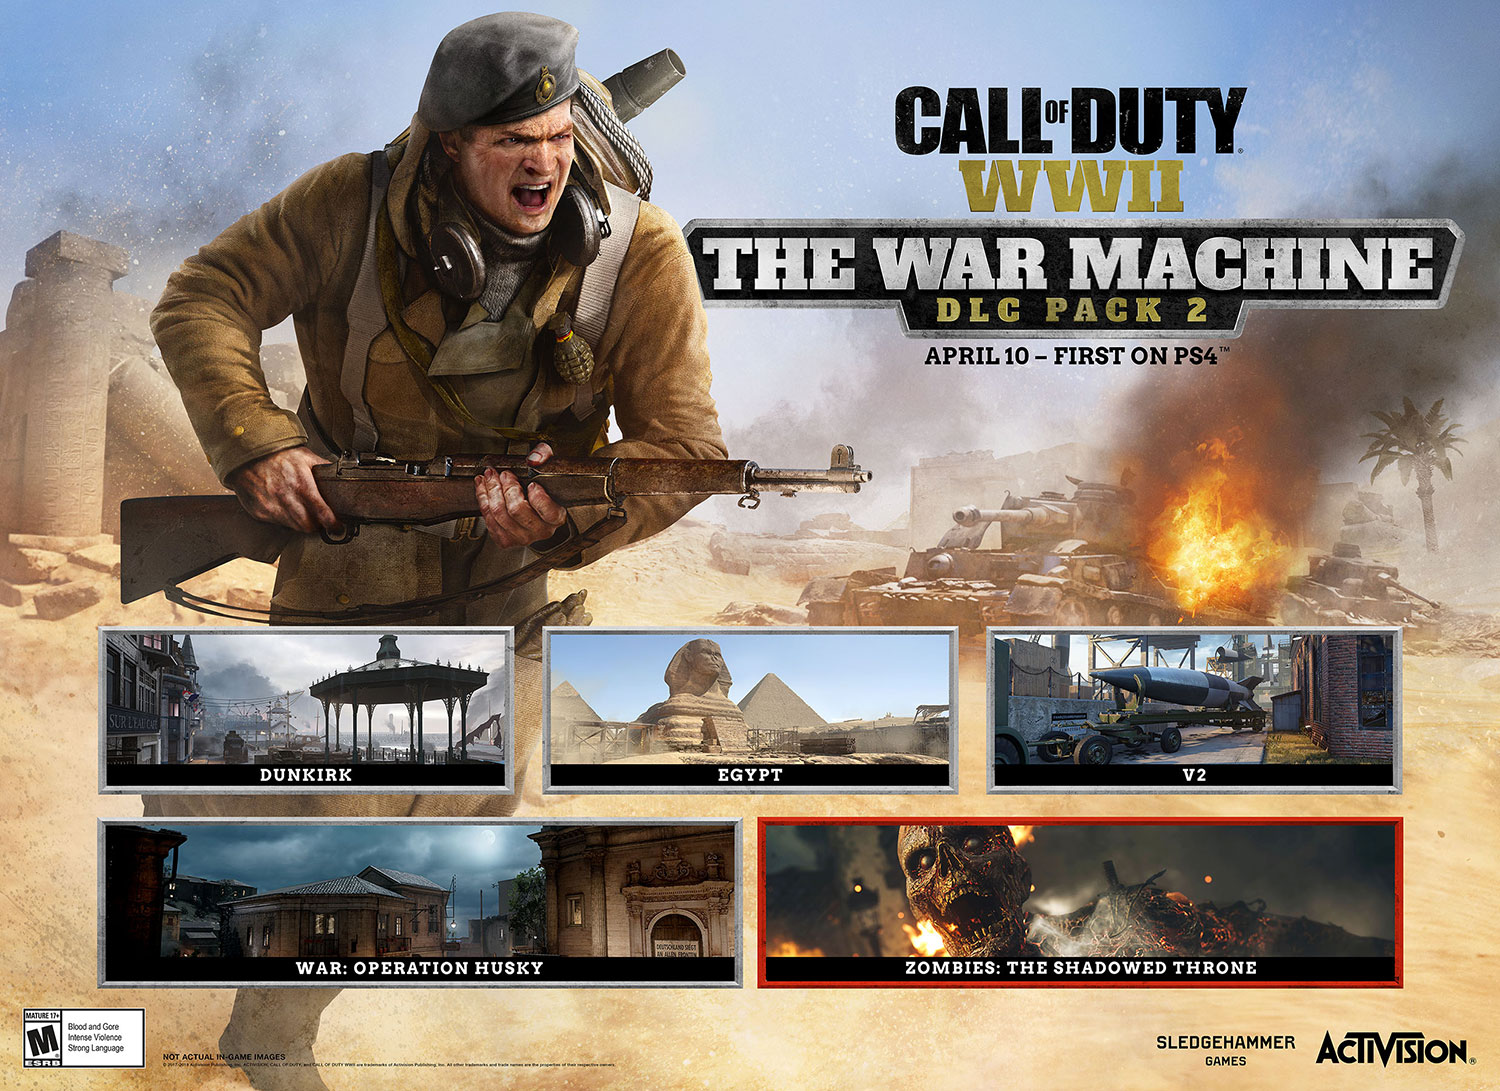 CoD WWII: The War Machine DLC Pack 2 for PS4 | Best Buy Blog